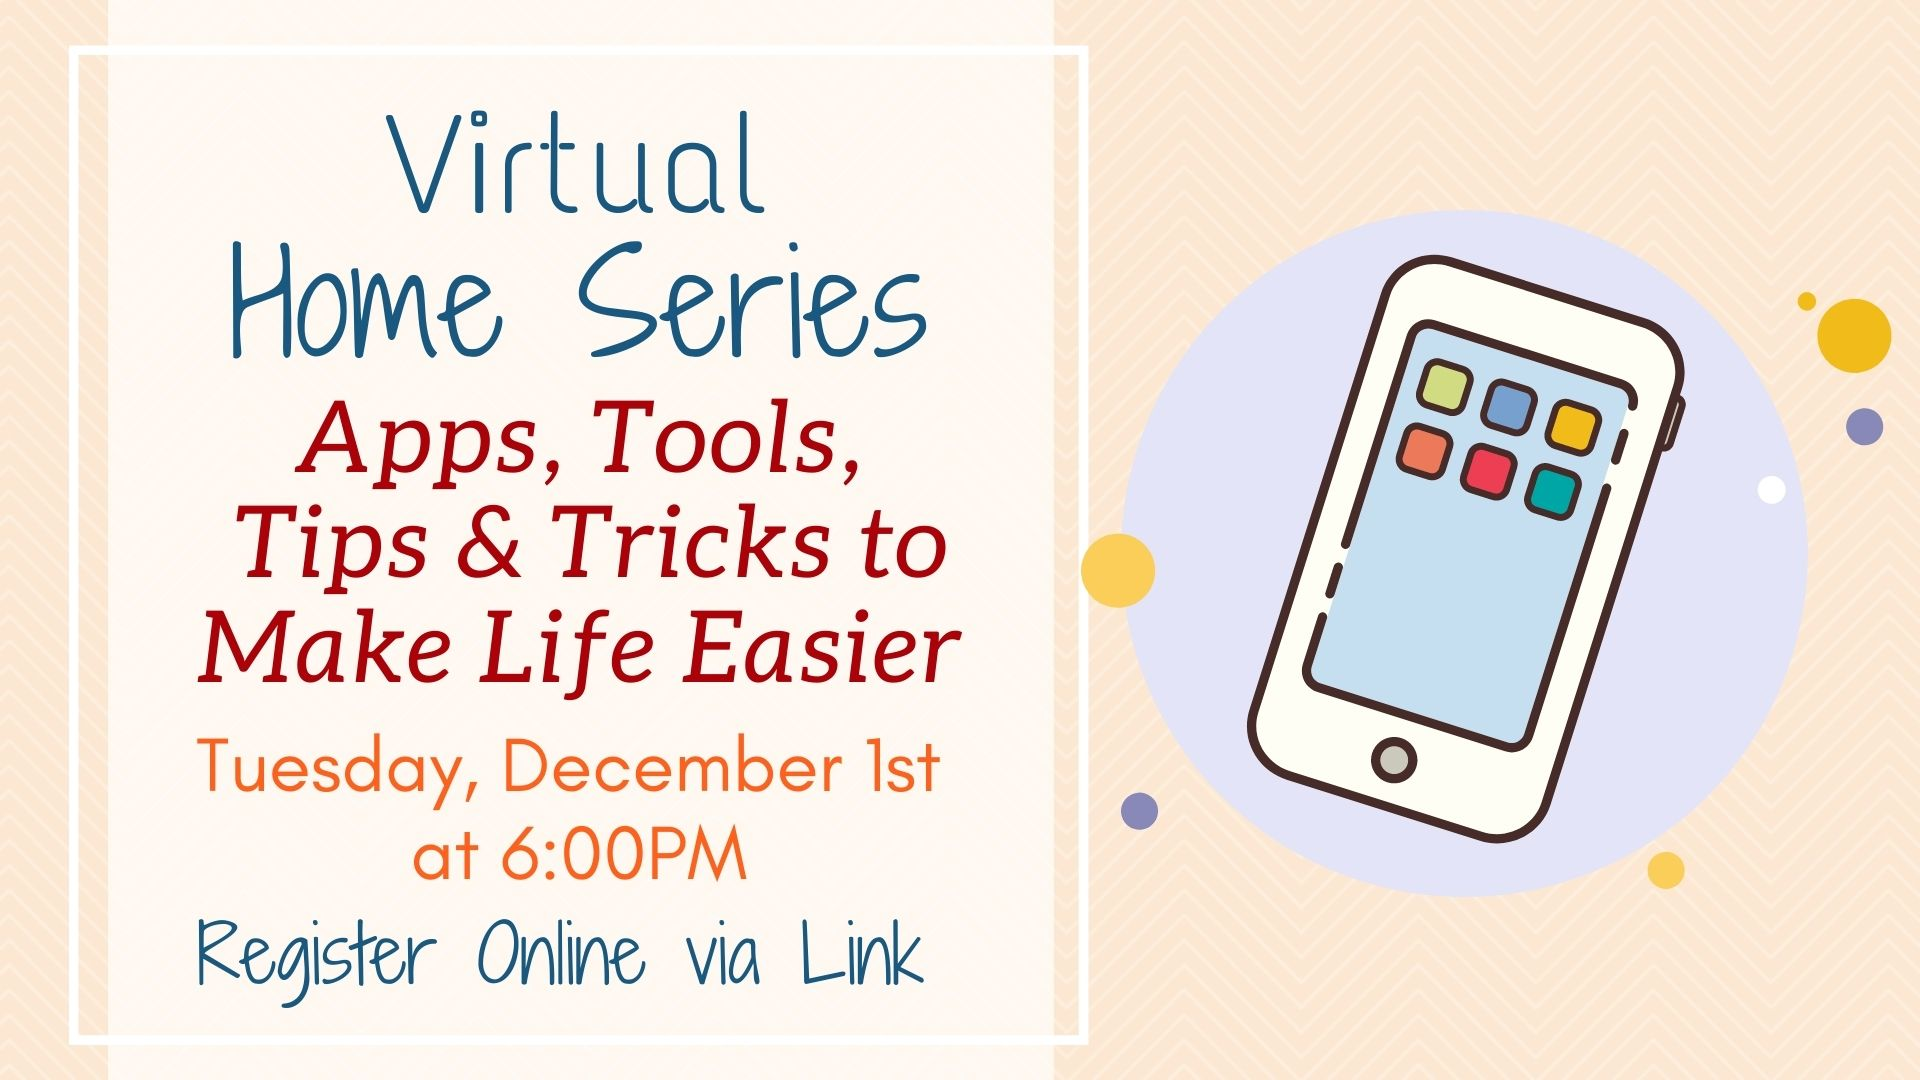 Virtual Home Series: Apps, Tools, Tips & Tricks to Make Life Easier & More Efficient